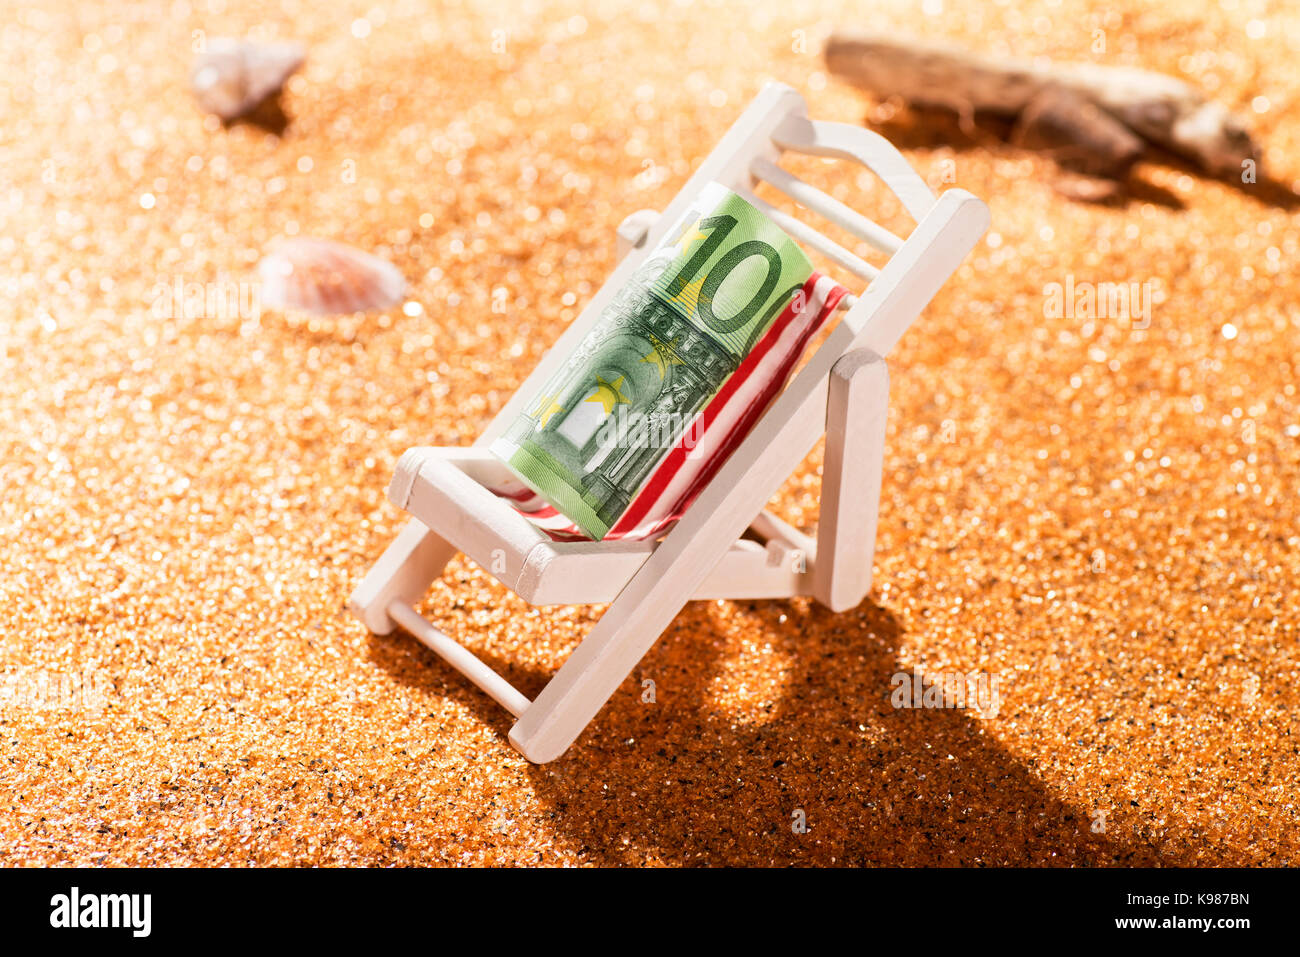 A rolled 100 euro banknote on a deck chair in a beach scene - Stock Image